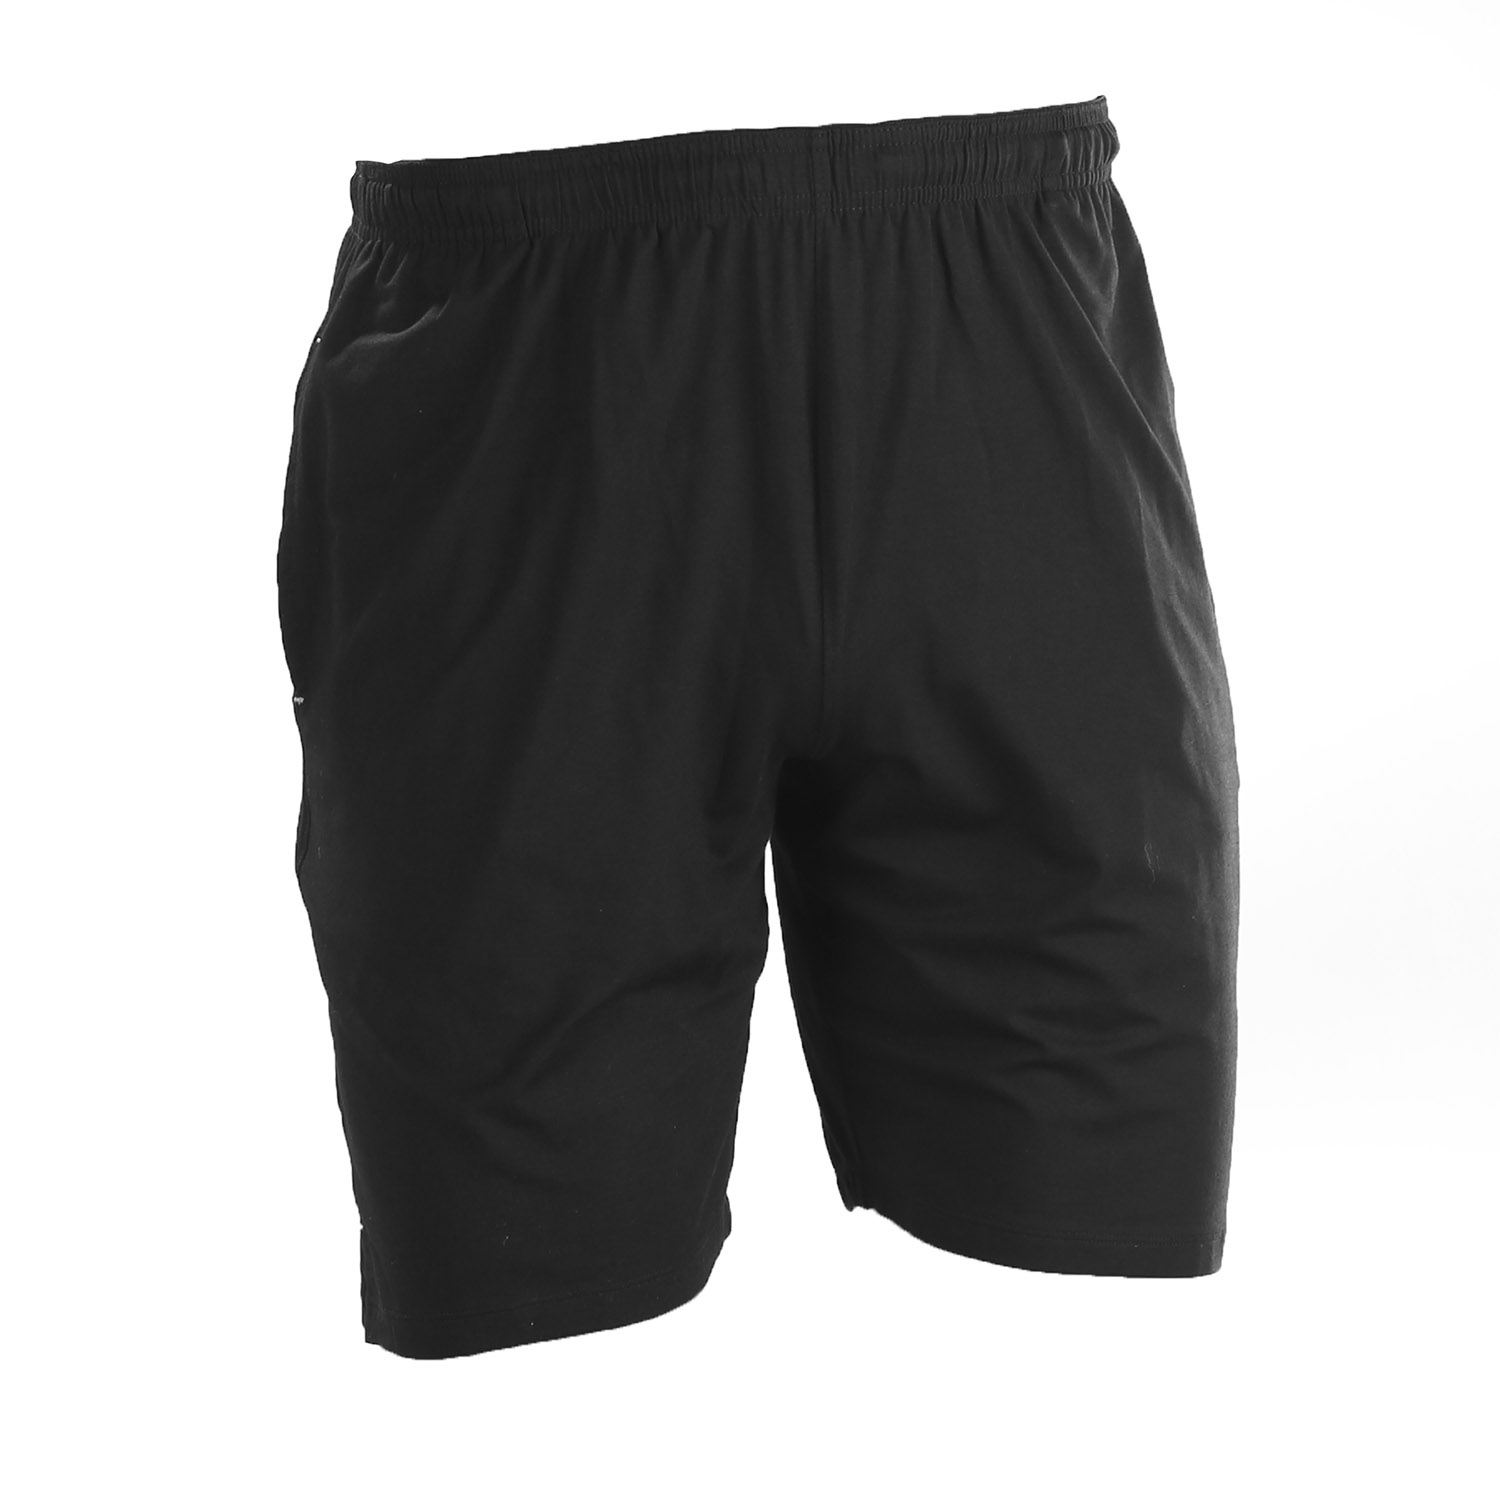 tasc Performance Vital Training Shorts